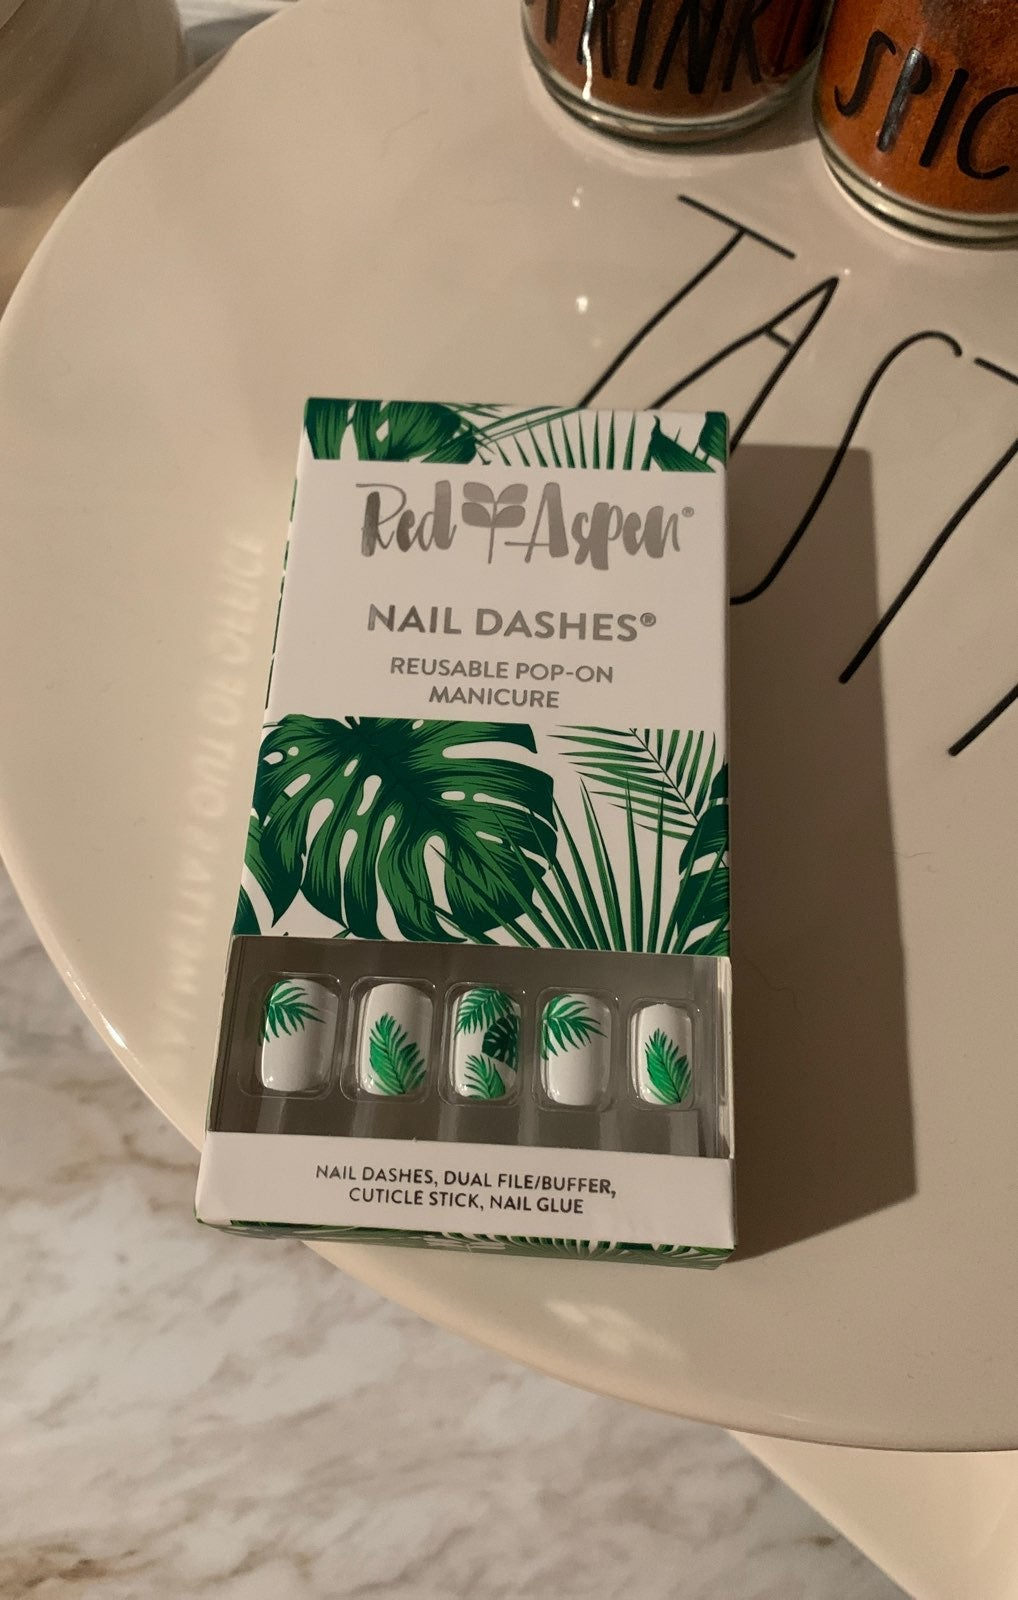 Pop-on Nail Dashes